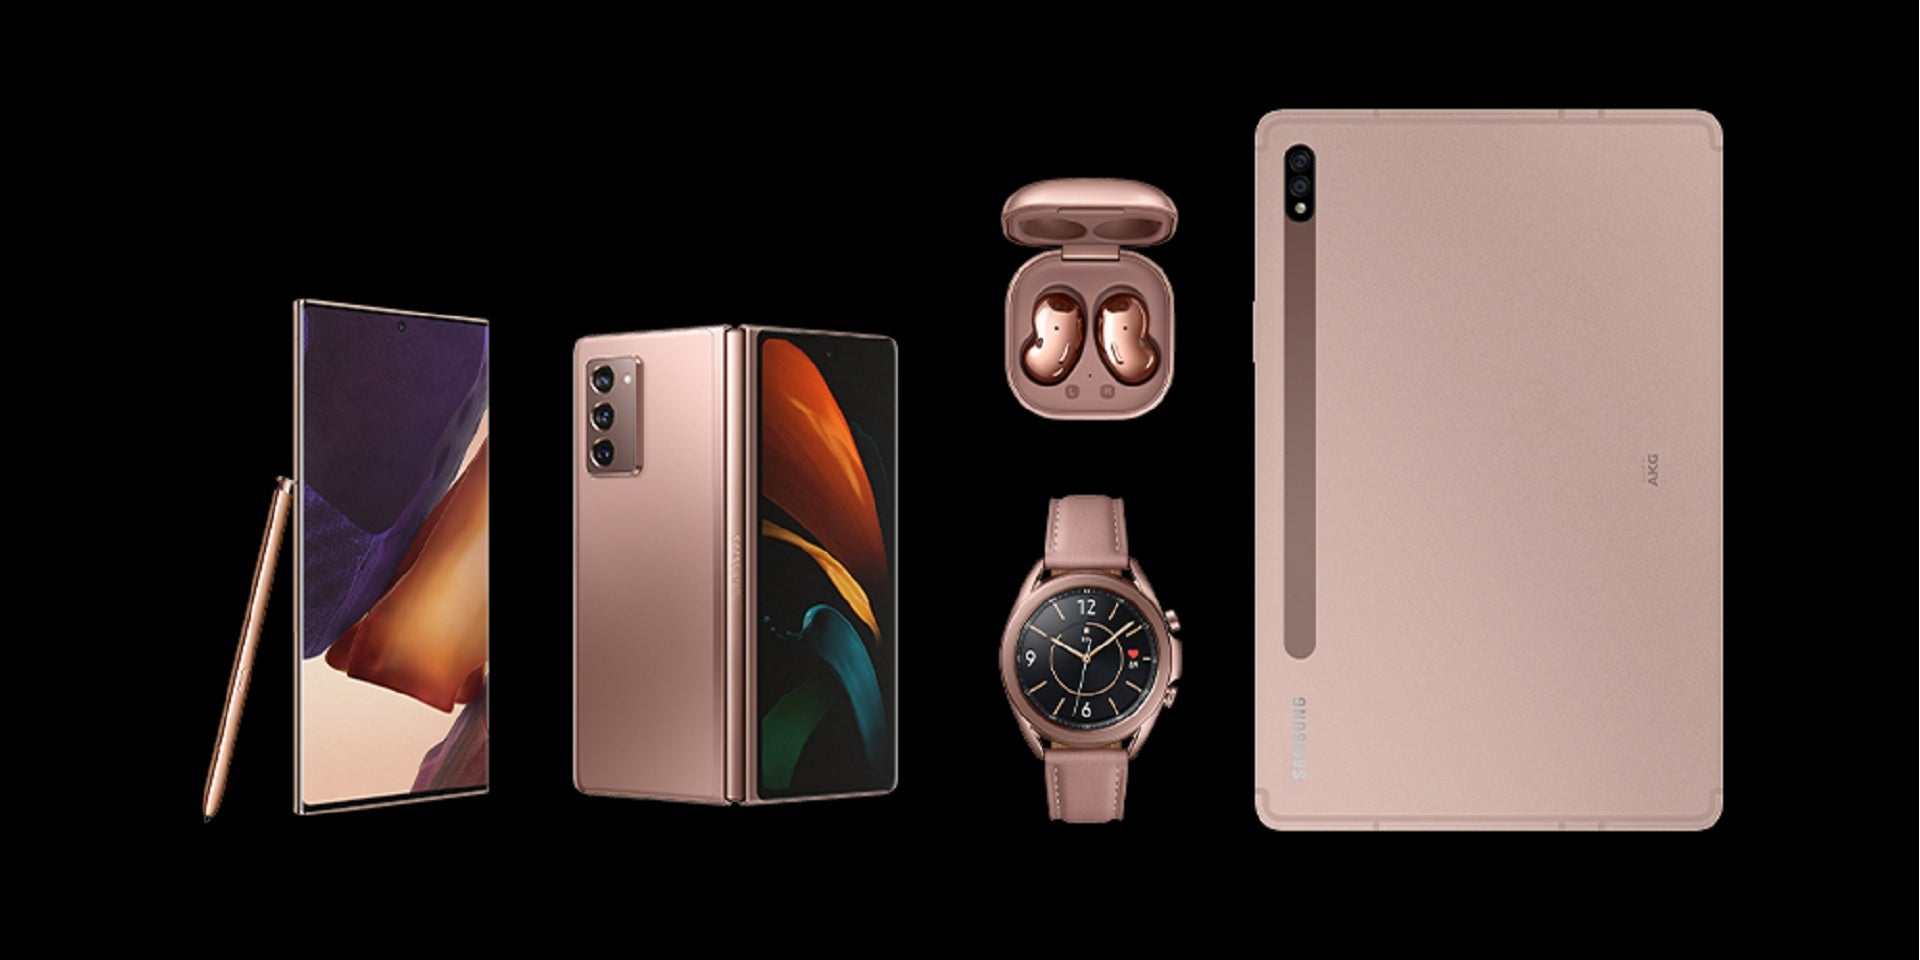 Samsung Unveils Latest Phones, Watches and More at Unpacked Event : Tech.co